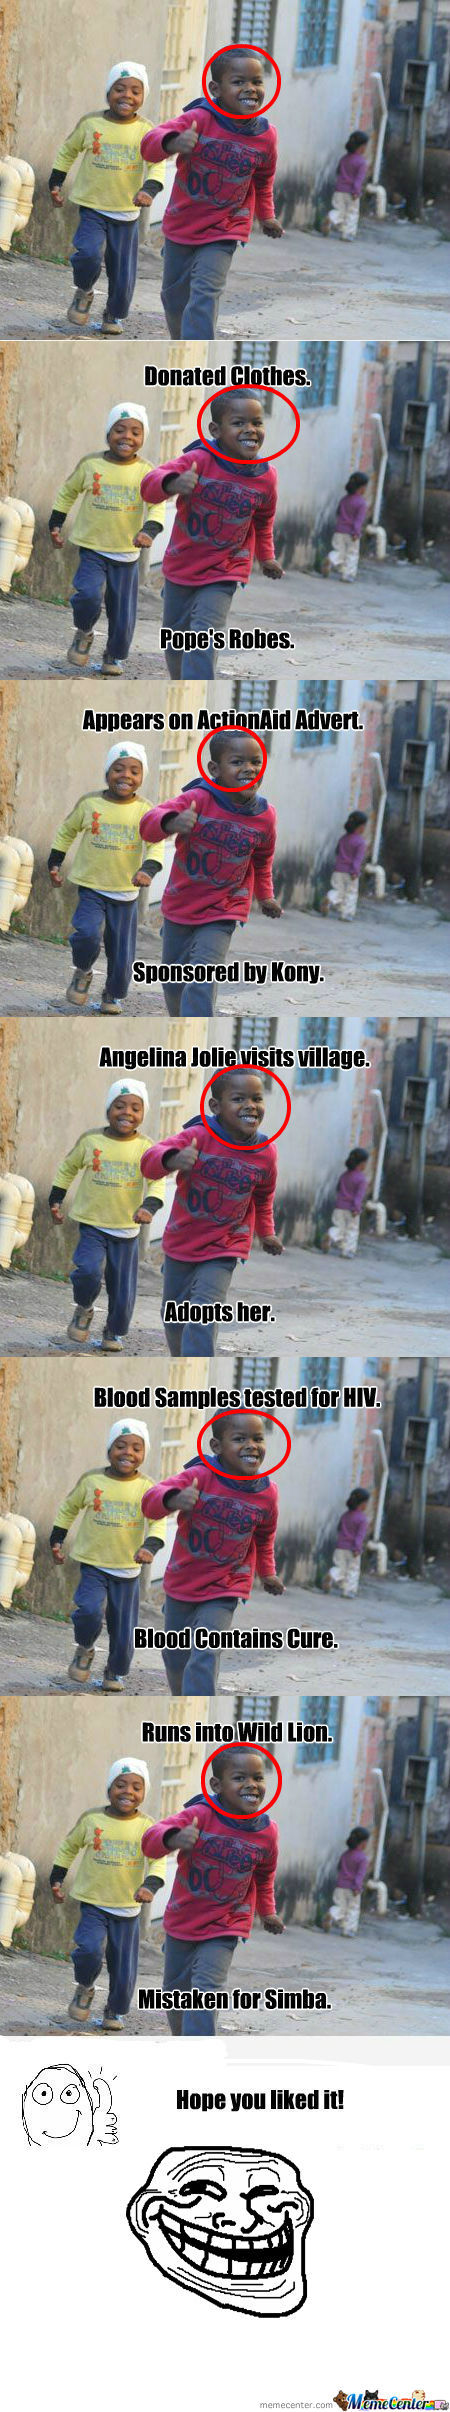 [RMX] Ridiculously Photogenic Third World Child